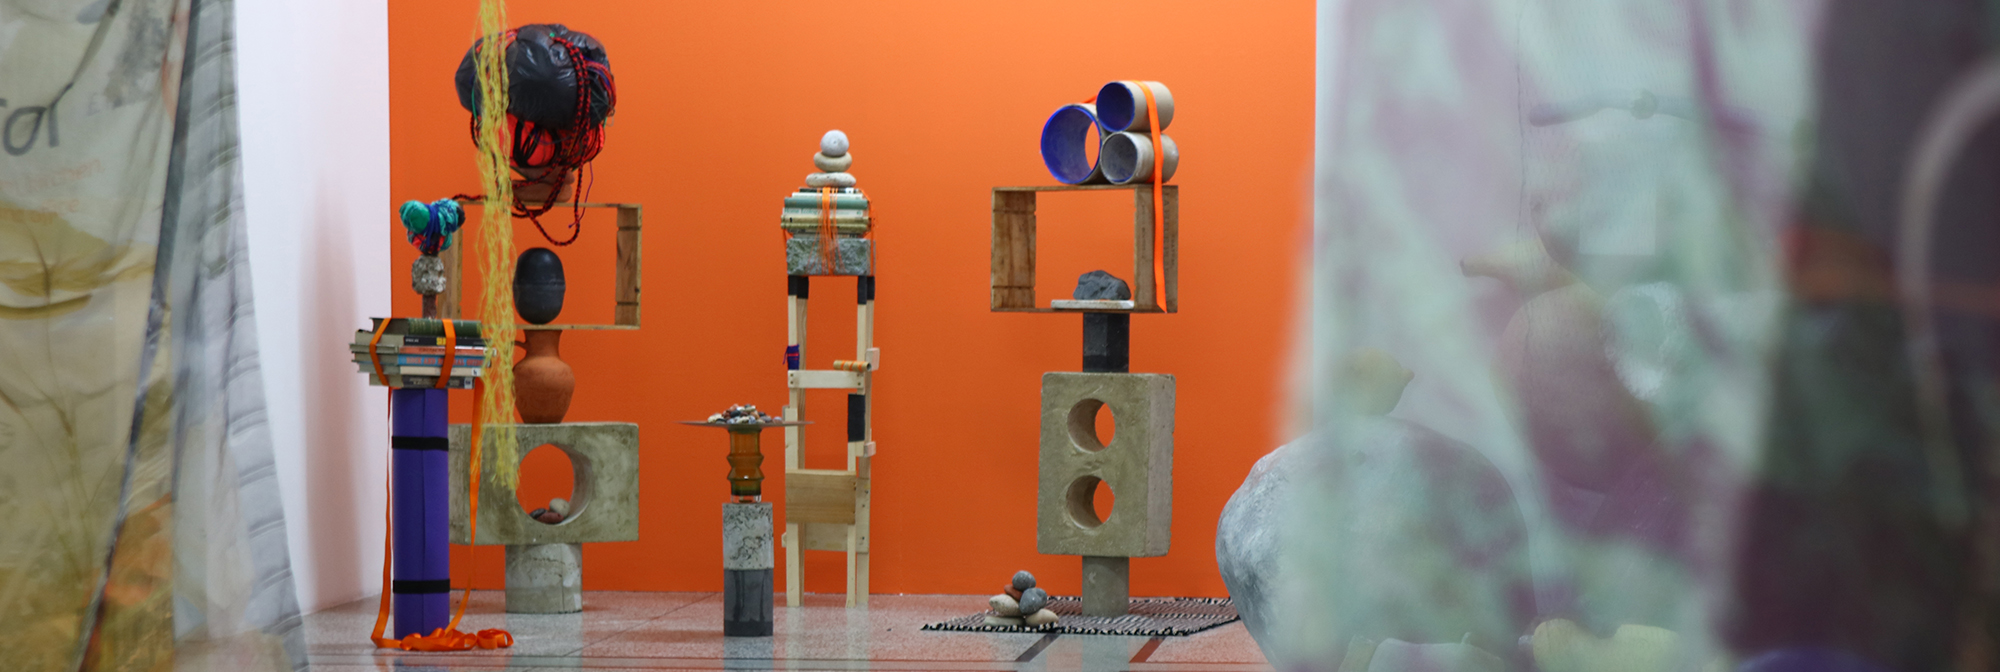 Exhibition installation shot featuring five assemblage sculptures against a bright orange wall, with draped printed fabrics in the foreground.